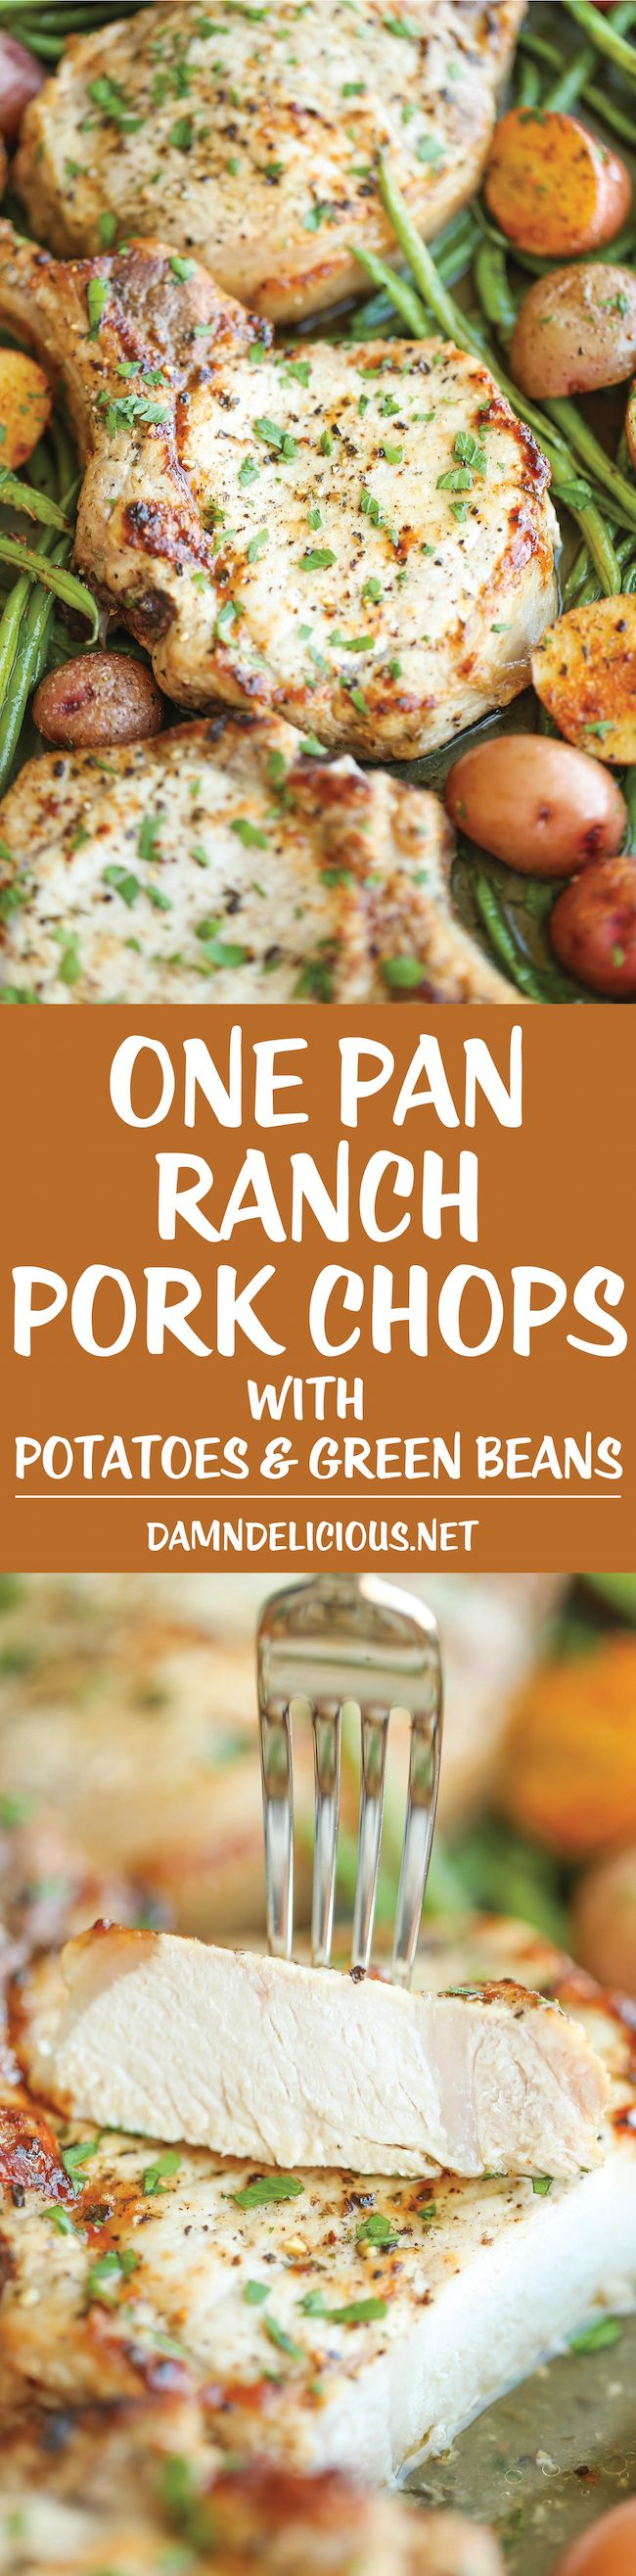 classic city bag One Pan Ranch Pork Chops and Veggies   The easiest 5 ingredient meal EVER  And yes  you just need one pan with 5 min prep  It  39 s quick  easy and effortless